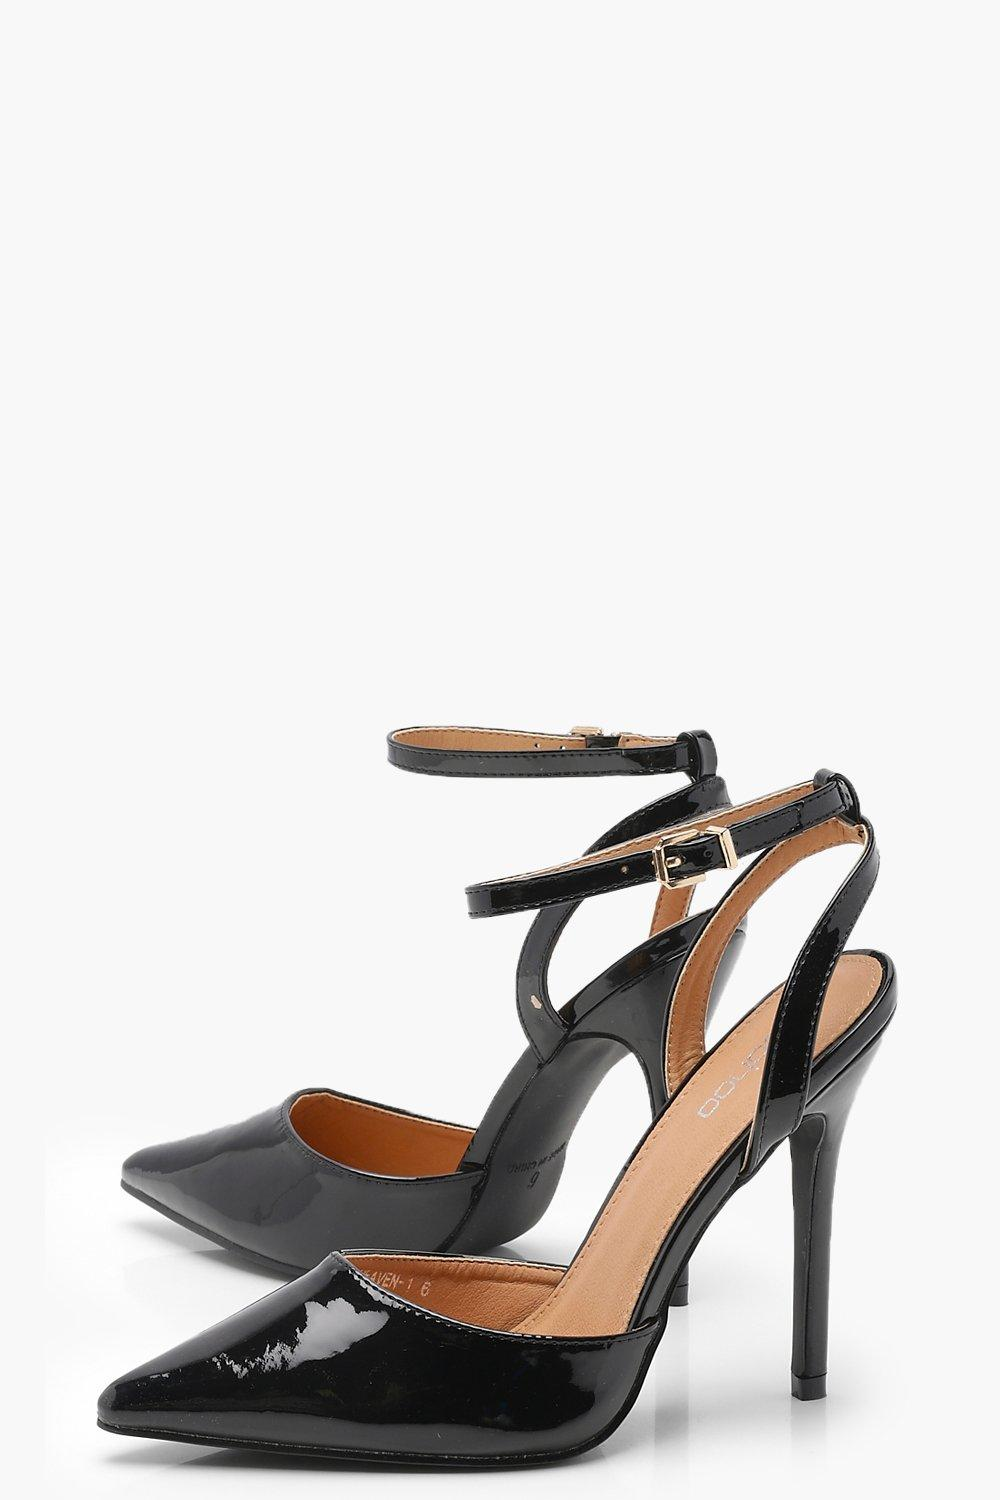 NEW-Boohoo-Womens-Pointed-Patent-Sling-Back-Heels-in